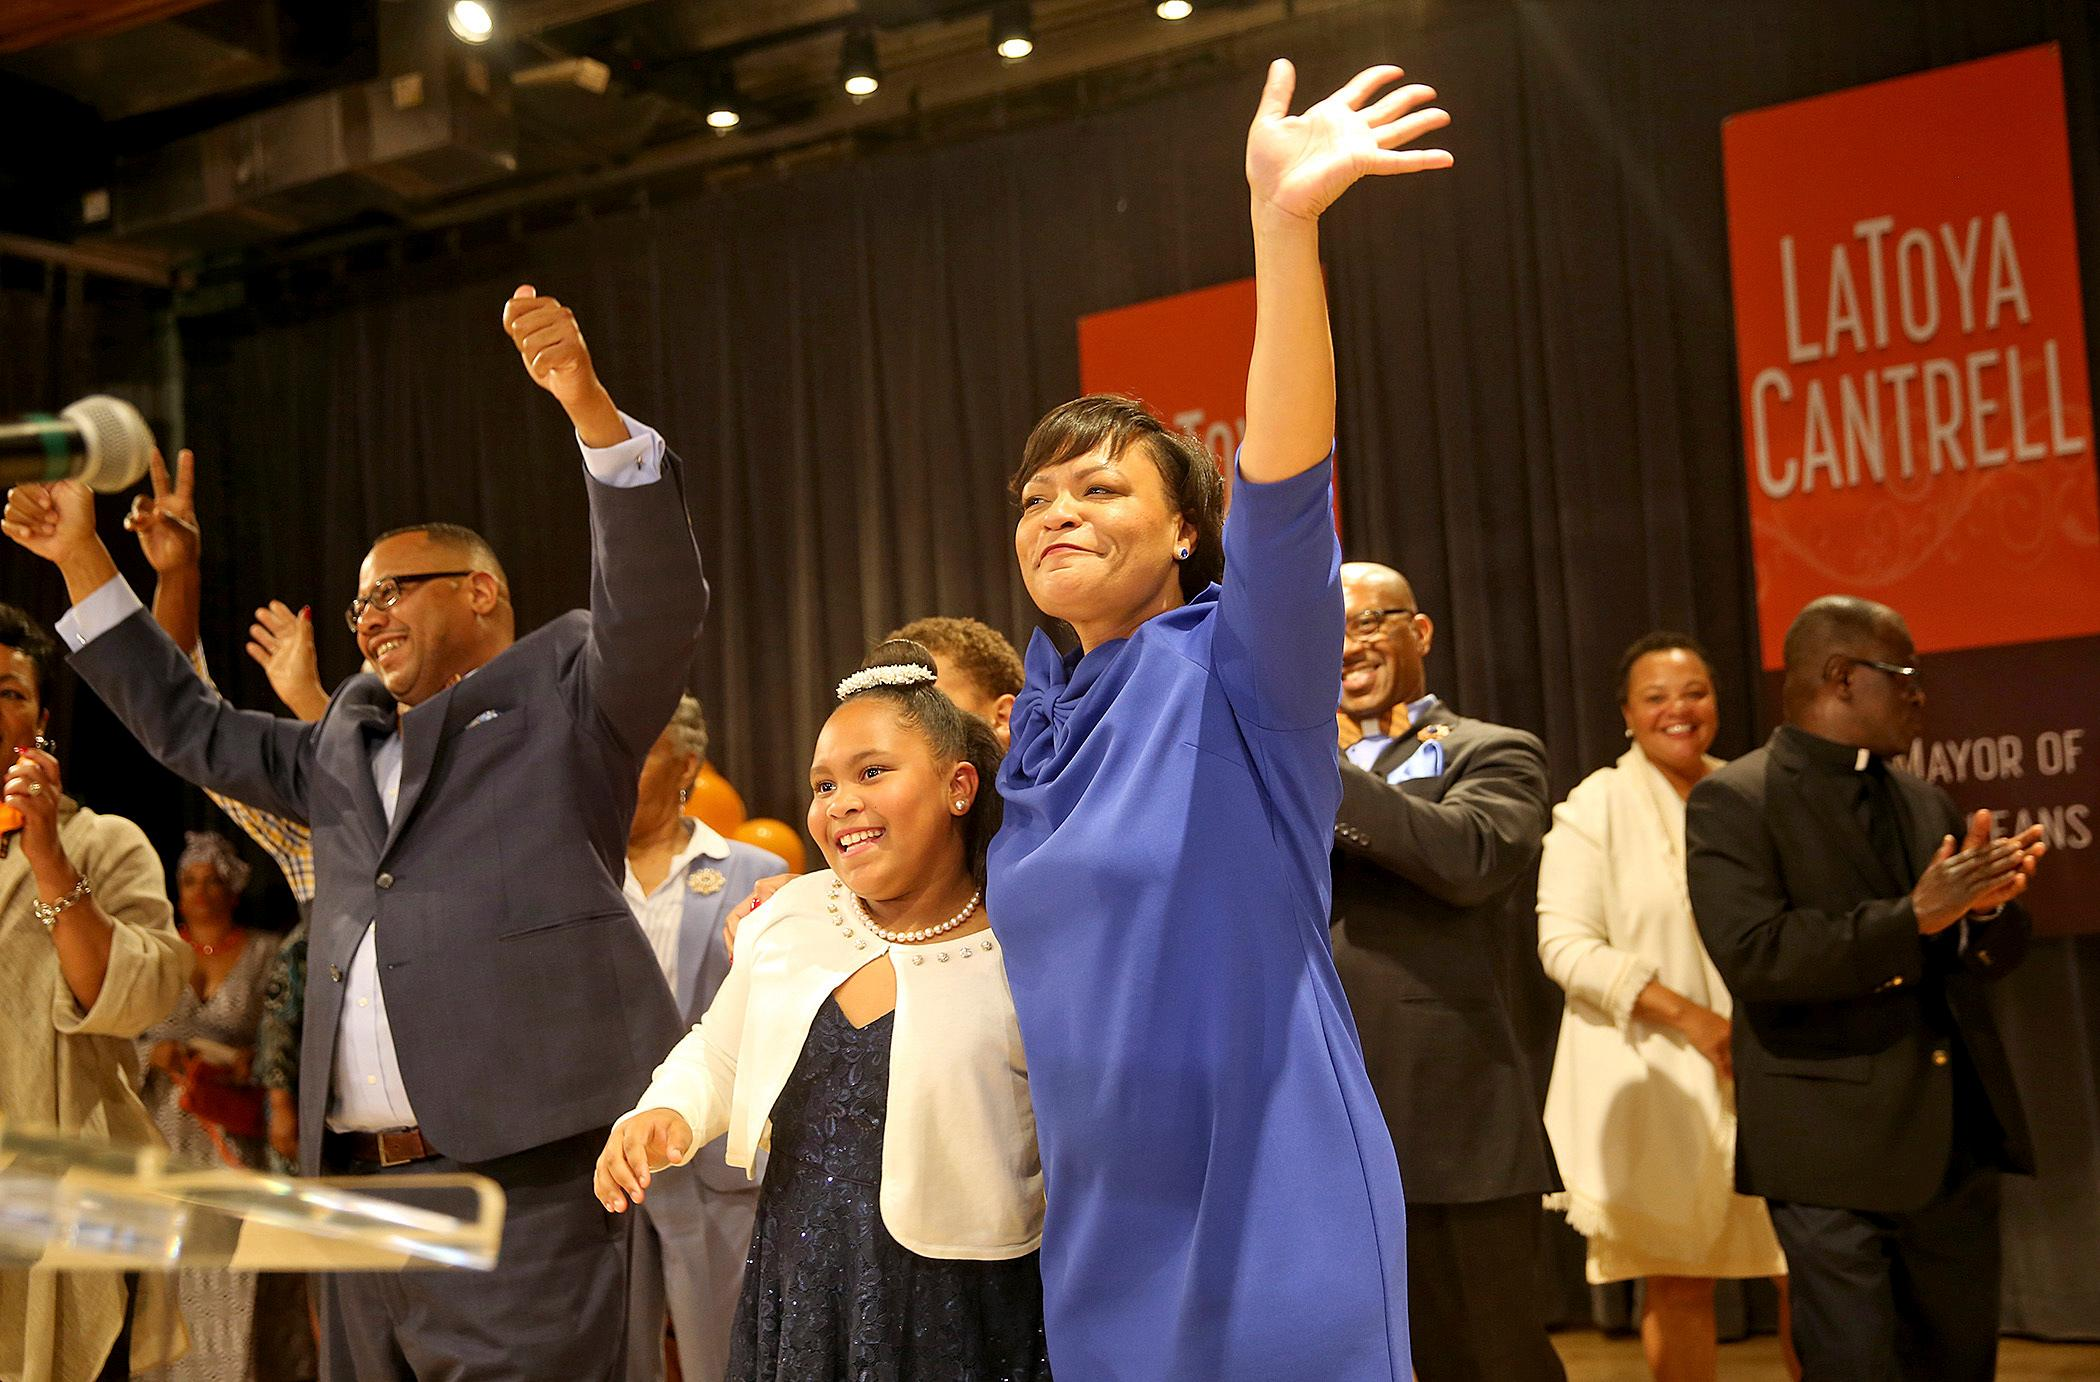 As her husband Jason Cantrell, left, cheers, LaToya Cantrell hugs her daughter RayAnn as she celebrates her victory in the New Orleans mayoral election during her election party at the New Orleans Jazz Market in Central City Saturday, Nov. 18, 2017, in New Orleans. Cantrell, a City Council member who gained a political following as she worked to help her hard-hit neighborhood recover from Hurricane Katrina, was the victor Saturday night in an election that will make her the first woman mayor in New Orleans' history. (Michael DeMocke/NOLA.com The Times-Picayune via AP)